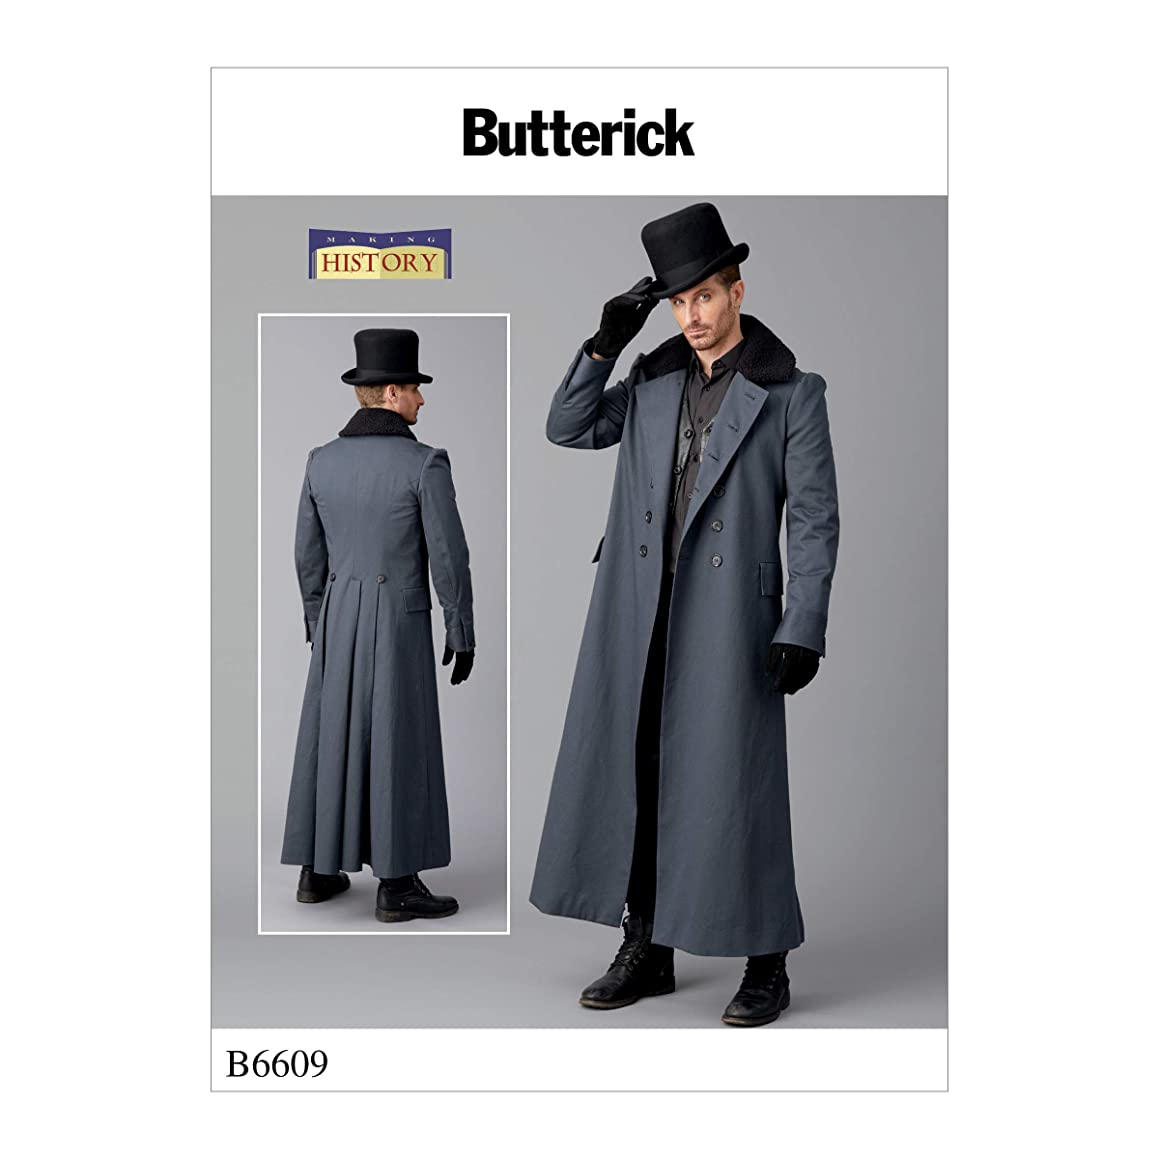 McCall's Patterns B6609MQQ BUT 6609 Butterick Patterns B6609 Men's Costume Coat by Making History, Size 46-48-50-52?